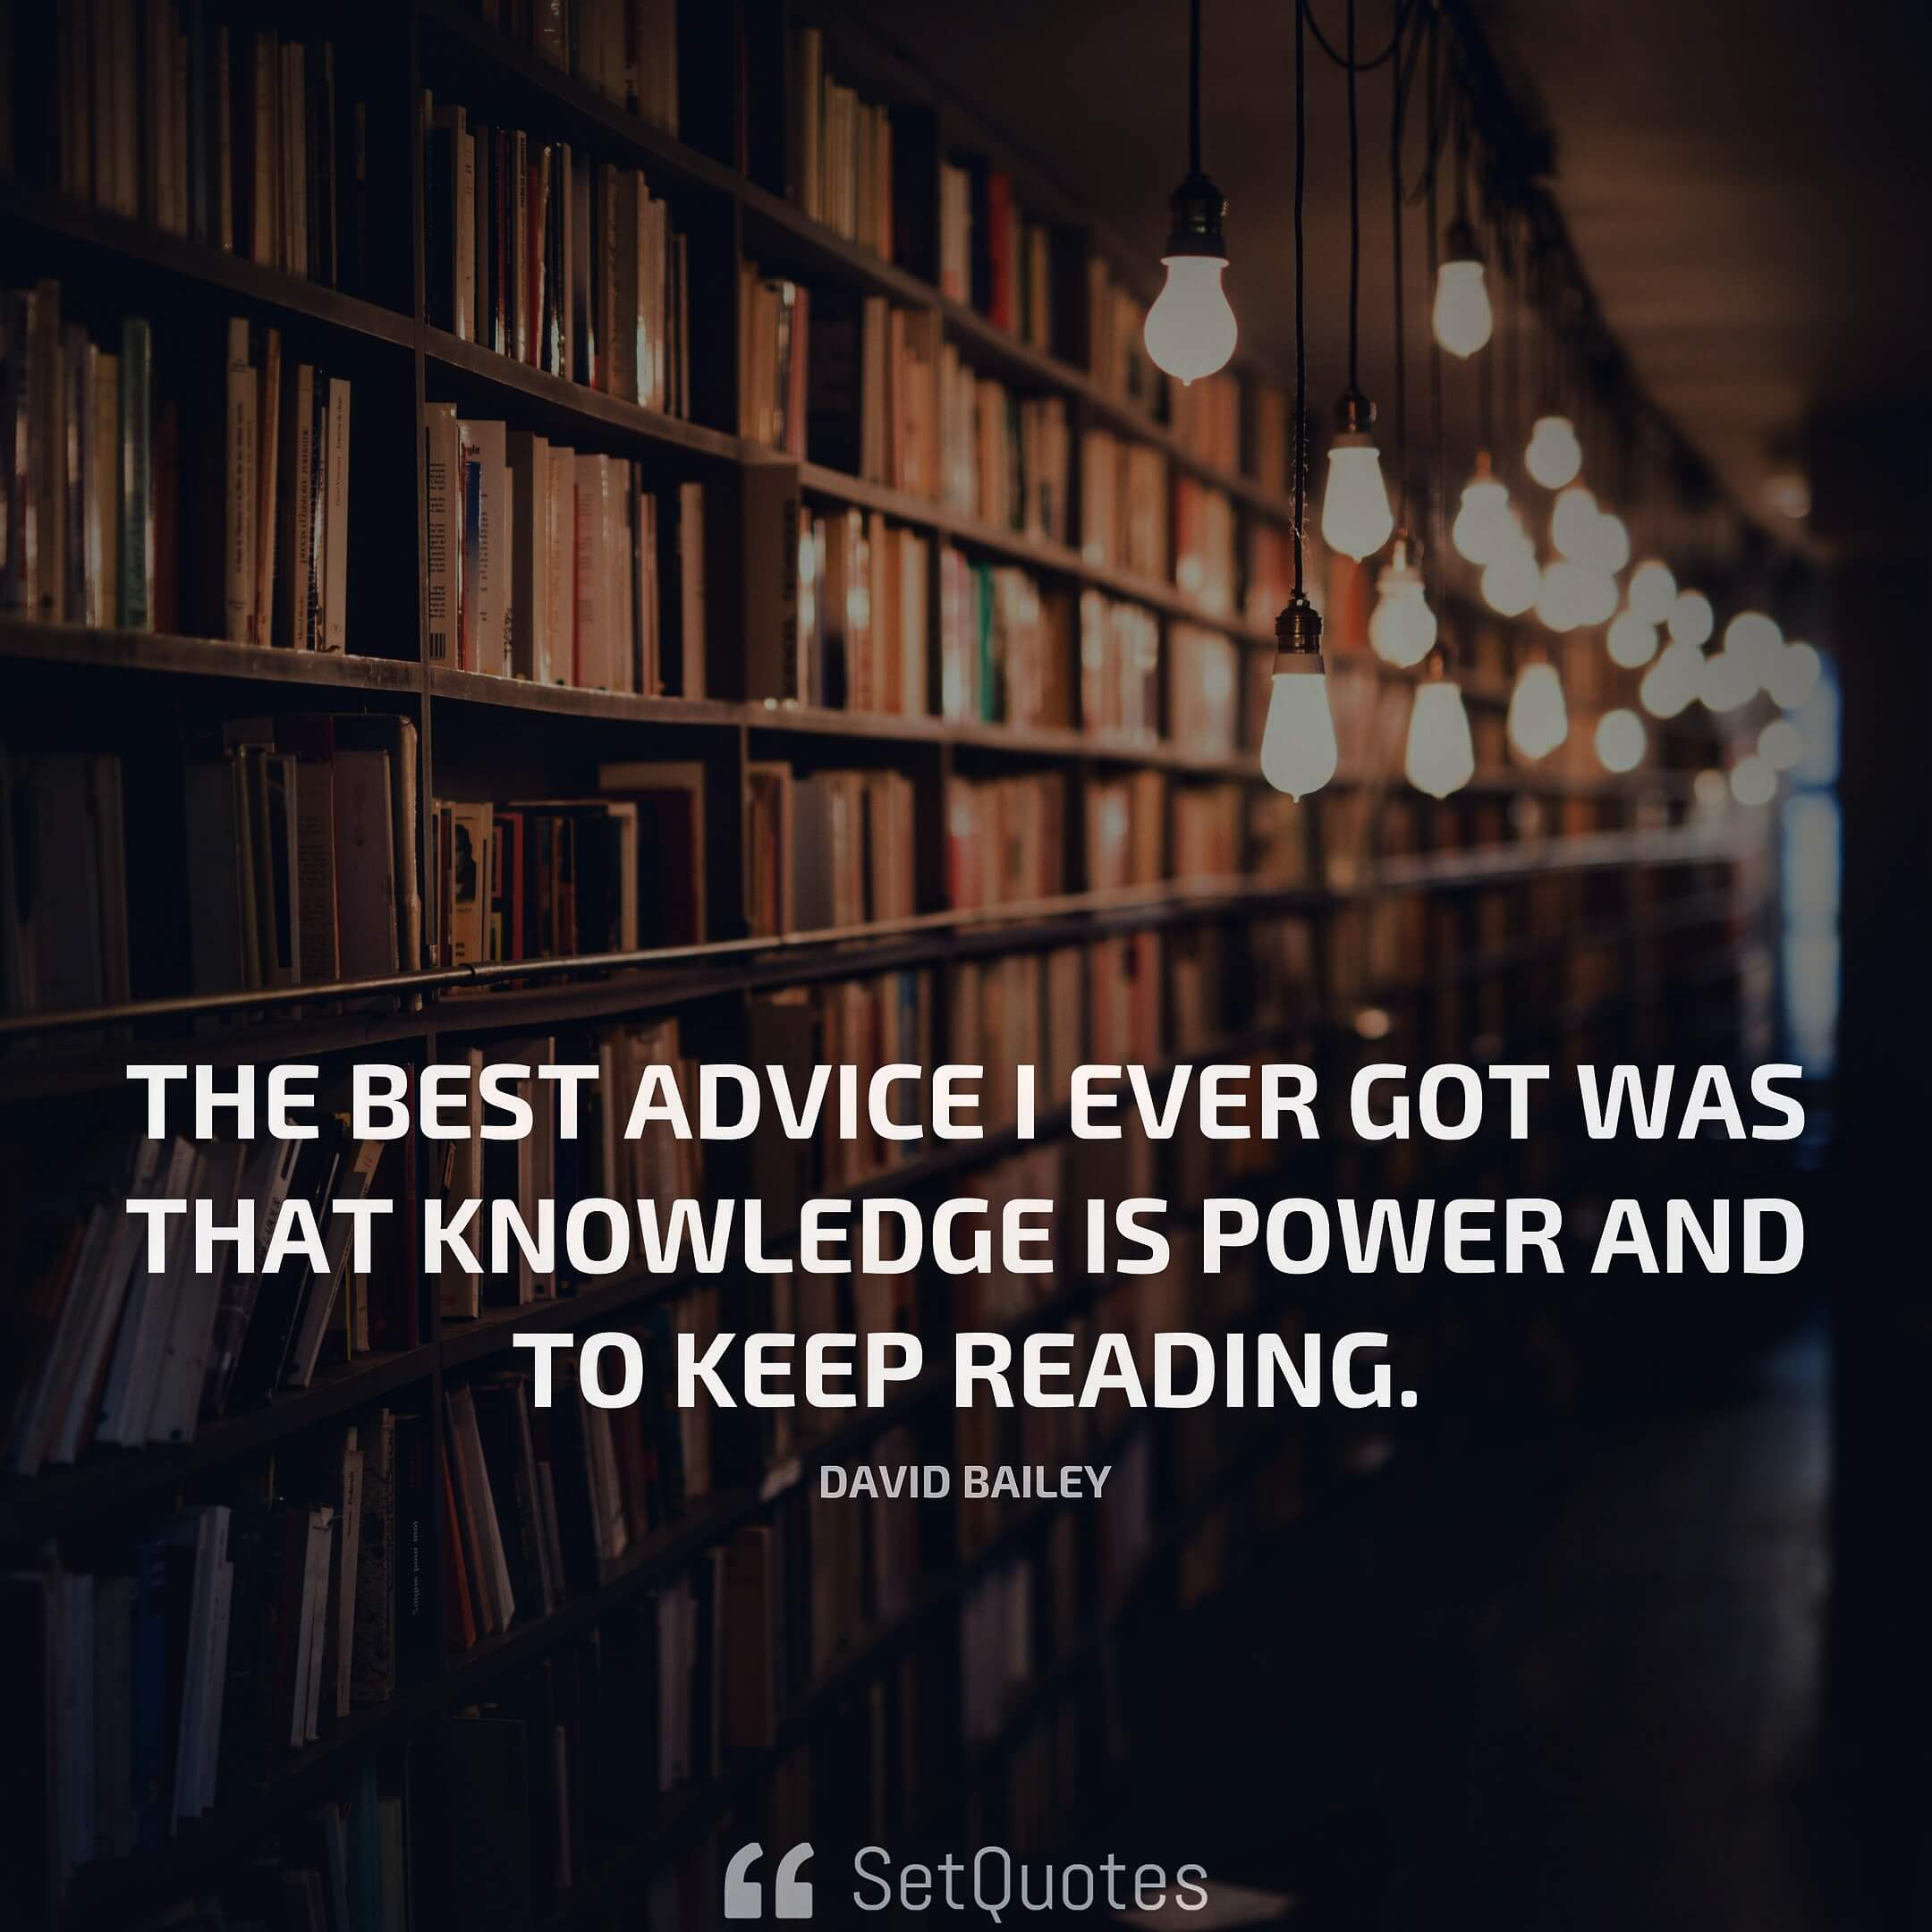 The best advice I ever got was that knowledge is power and to keep reading. - David Bailey